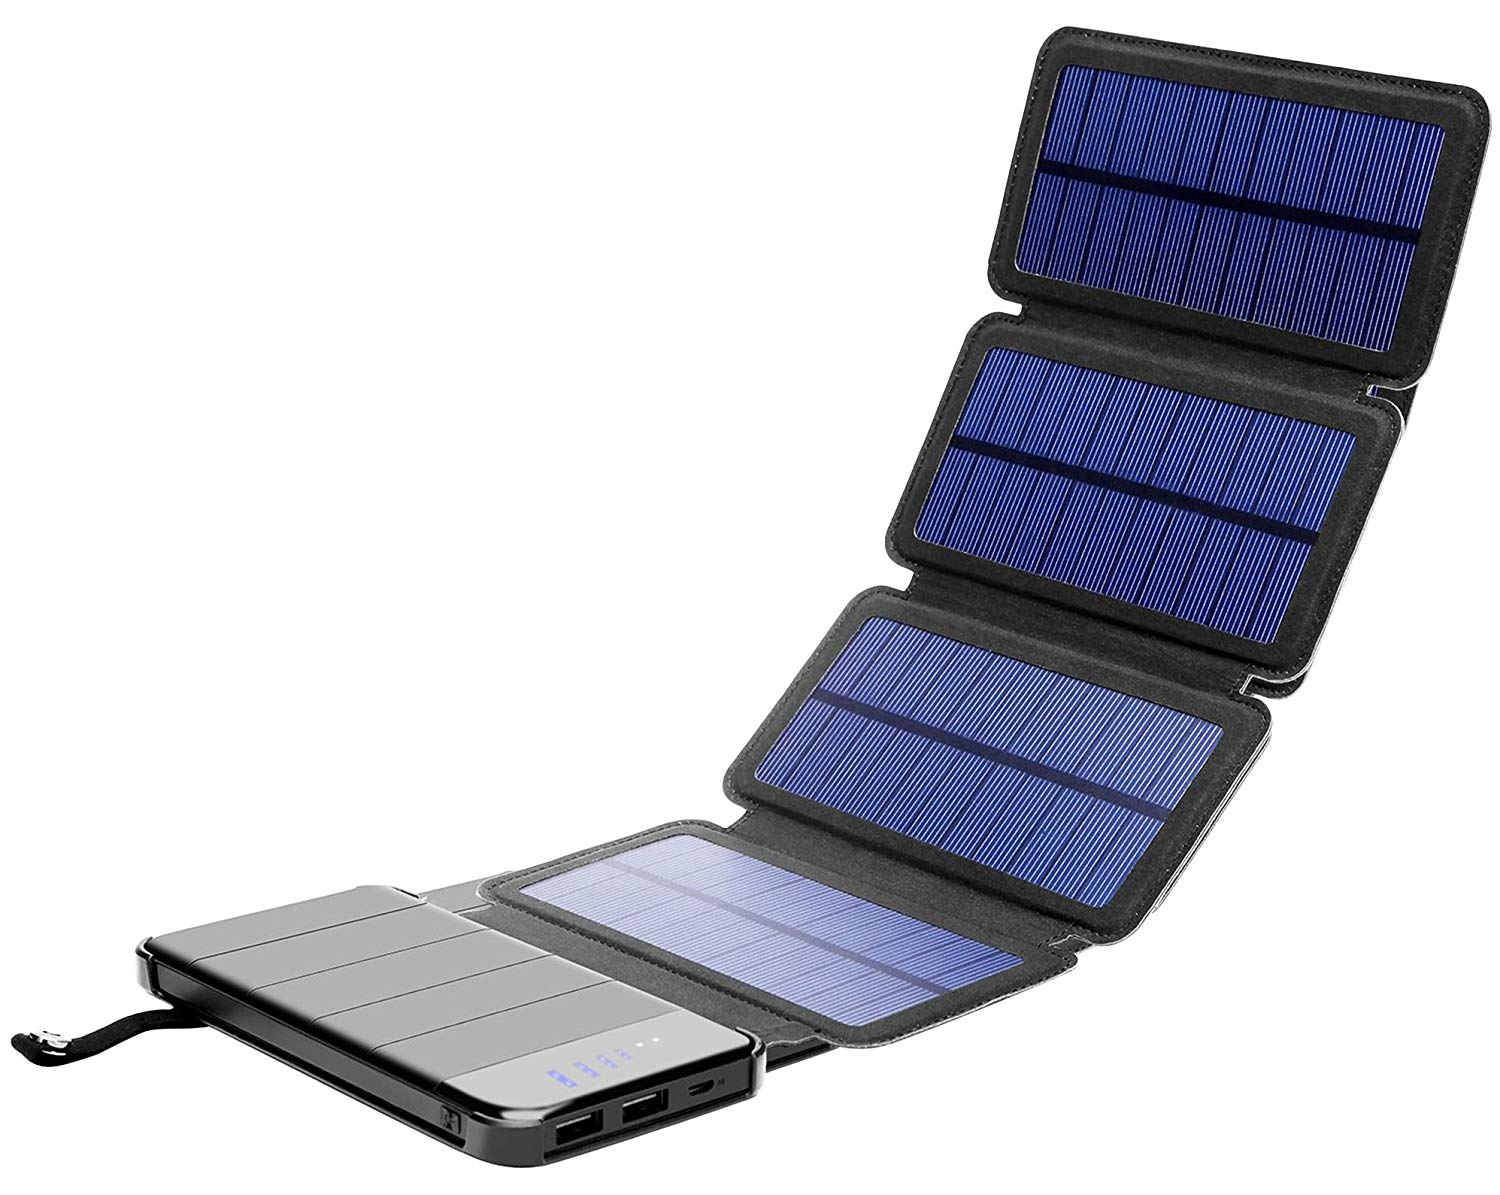 Solar Phone Charger 10.000mAh Power Bank-Portable Smartphone & iPhone Battery + Emergency Flashlight(2) USB Ports+(4) Foldable Solar Panels-Fast Charging Smart IC Hiking Camping